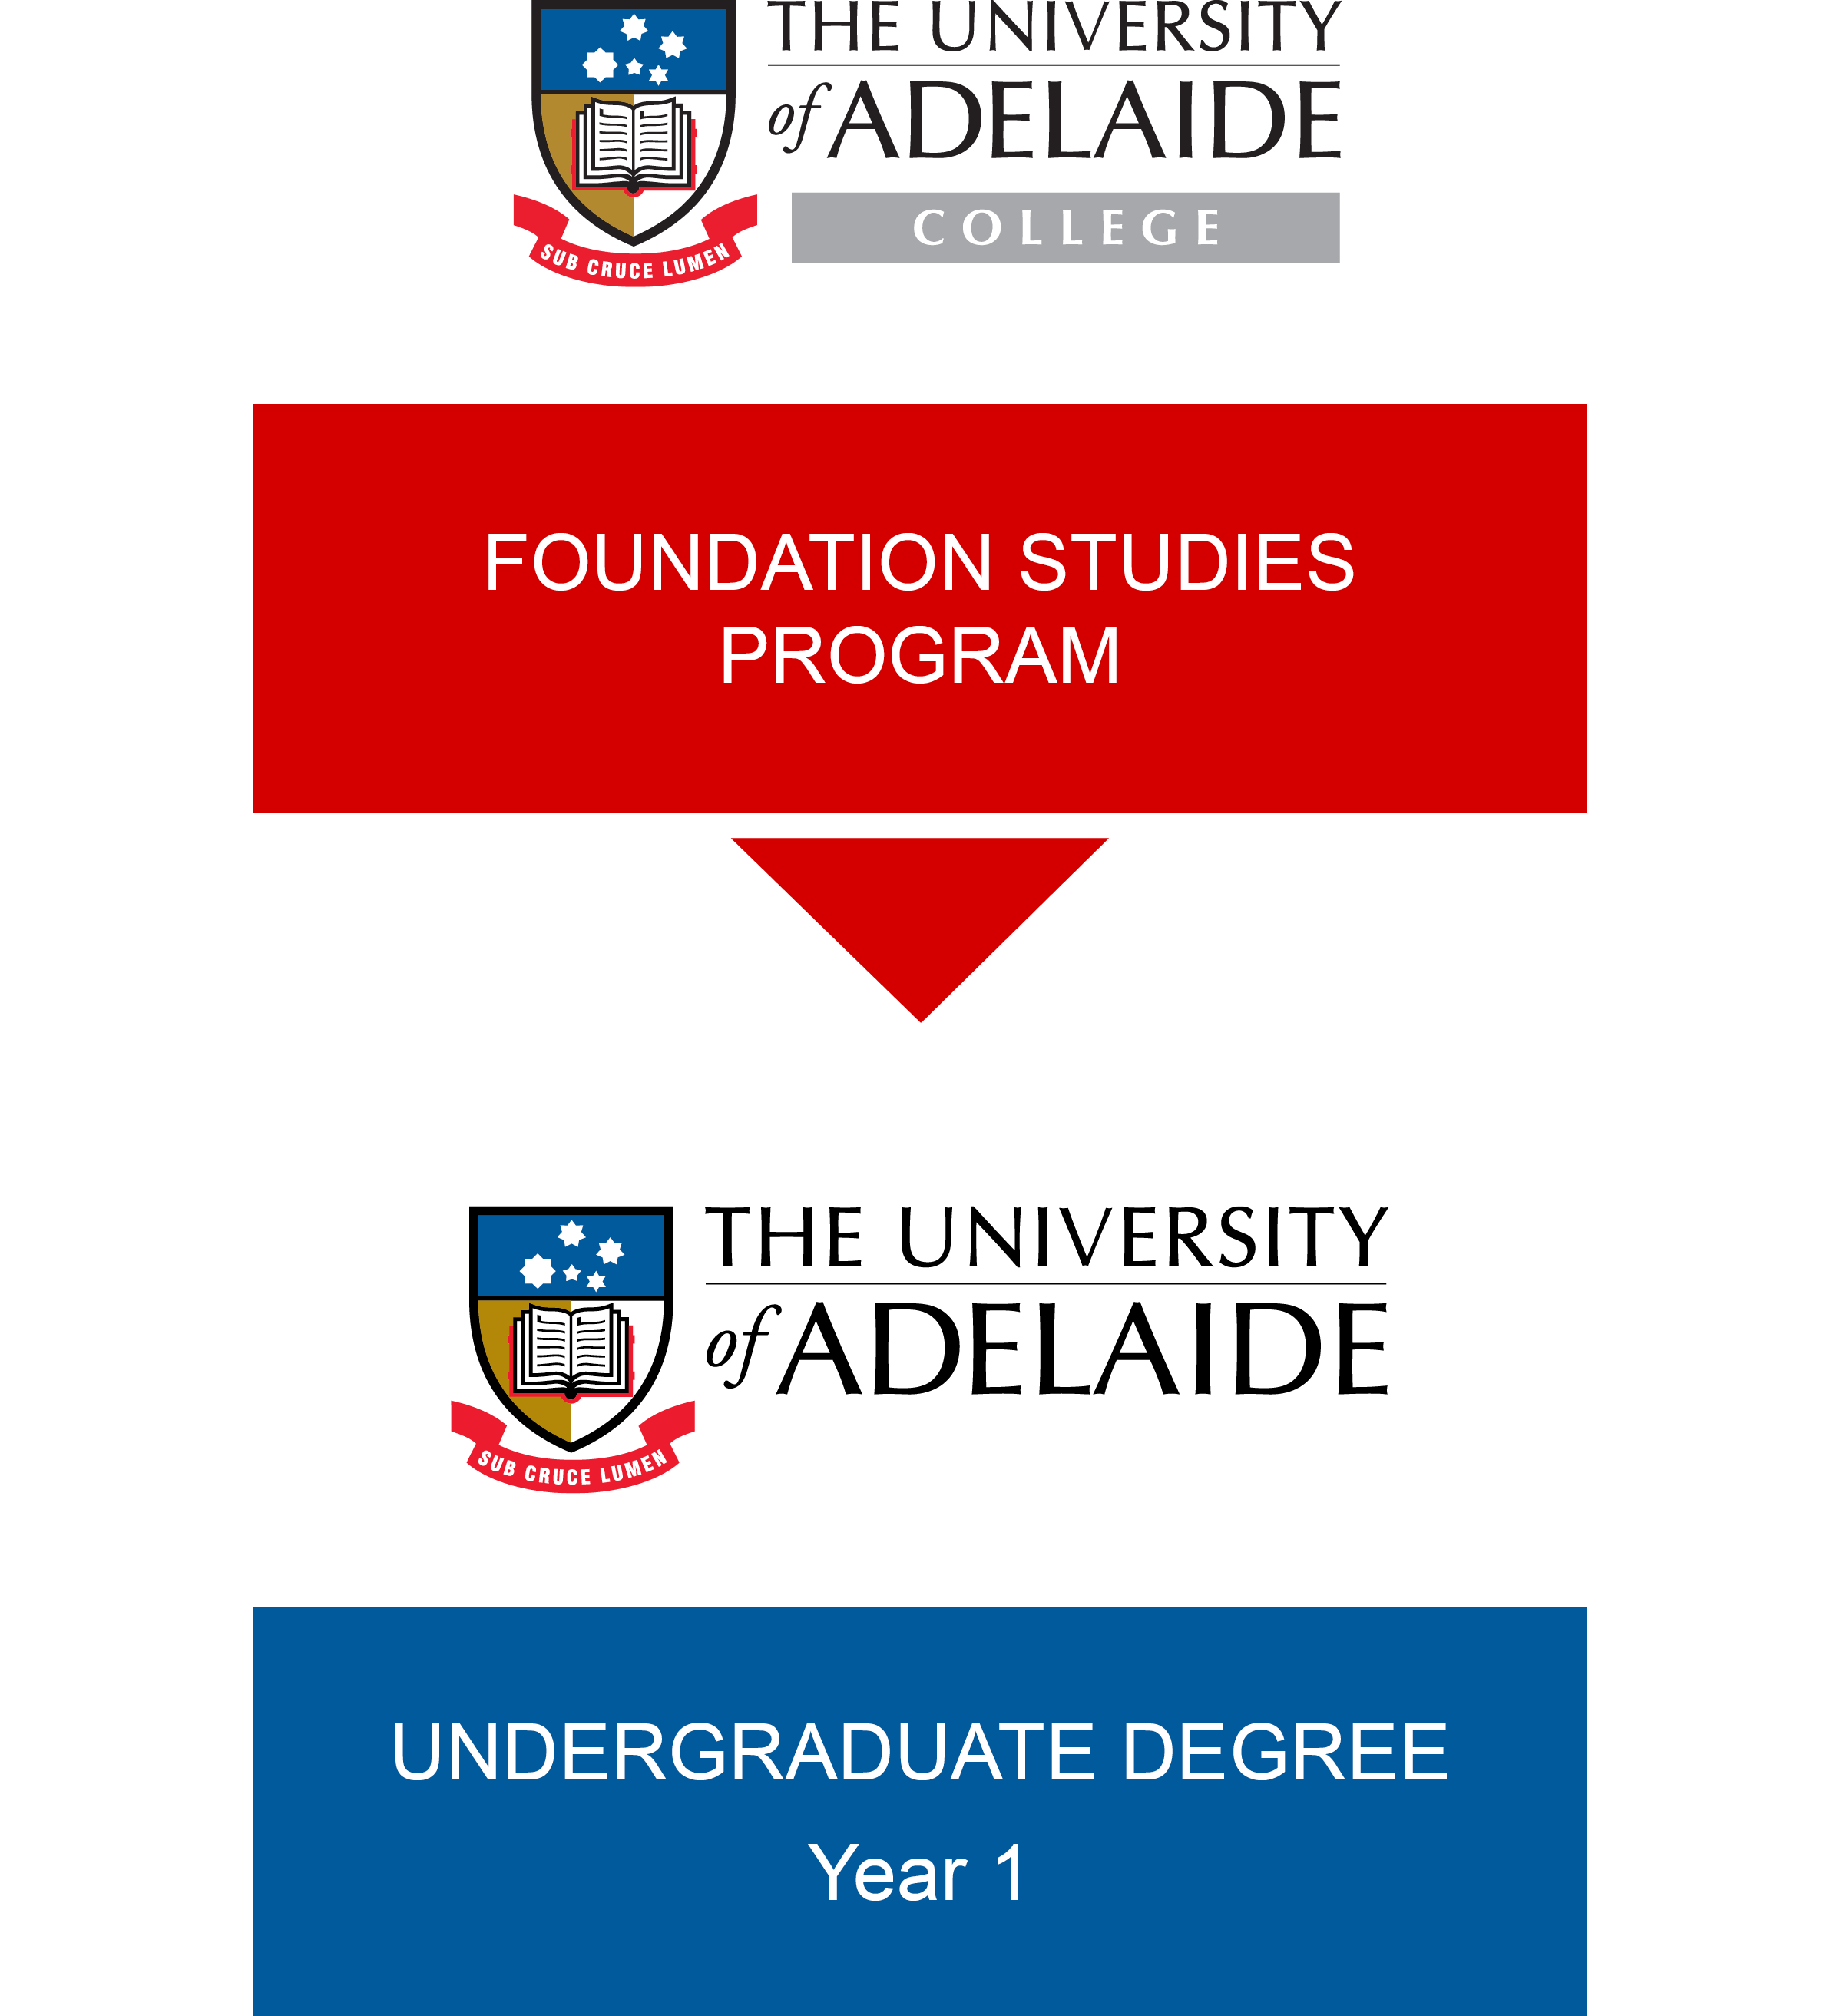 foundation studies the university of adelaide college pathway